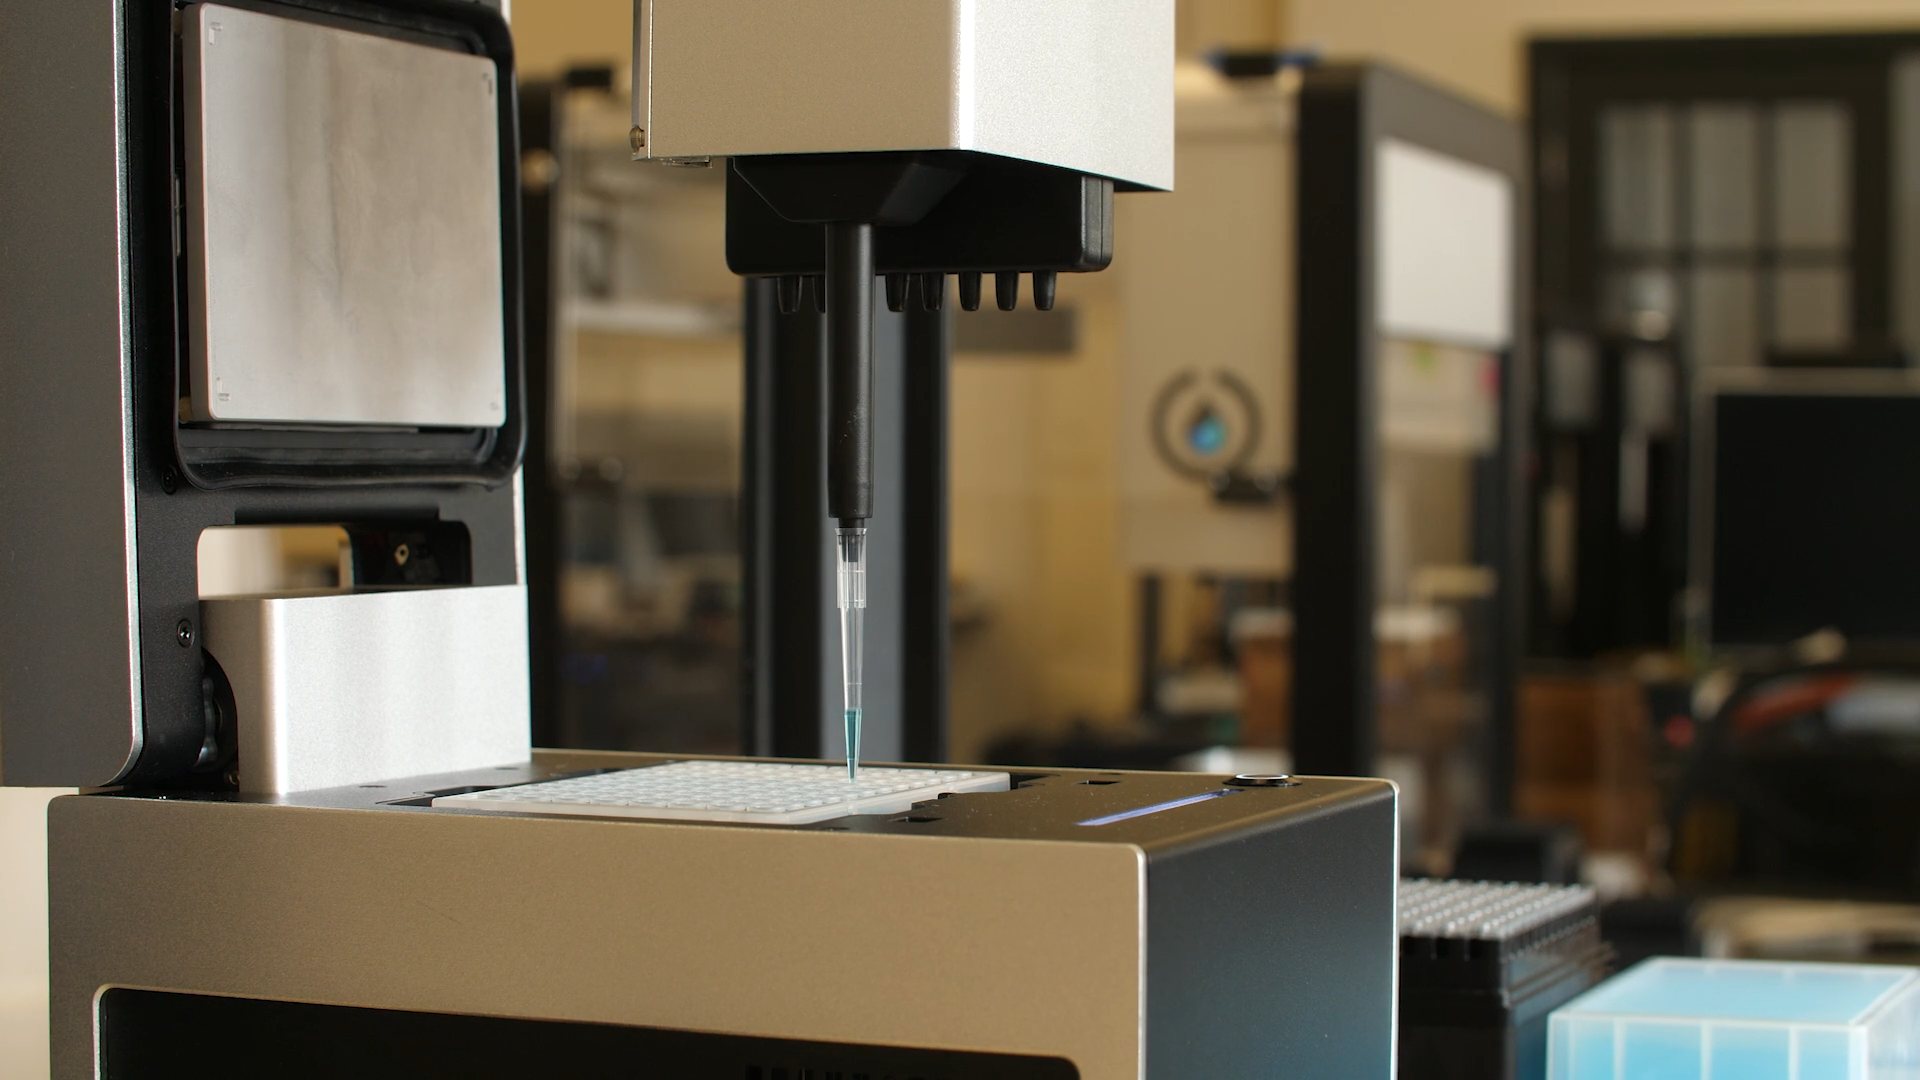 Why We Made The World's Most Affordable Fully-Automated Thermocycler